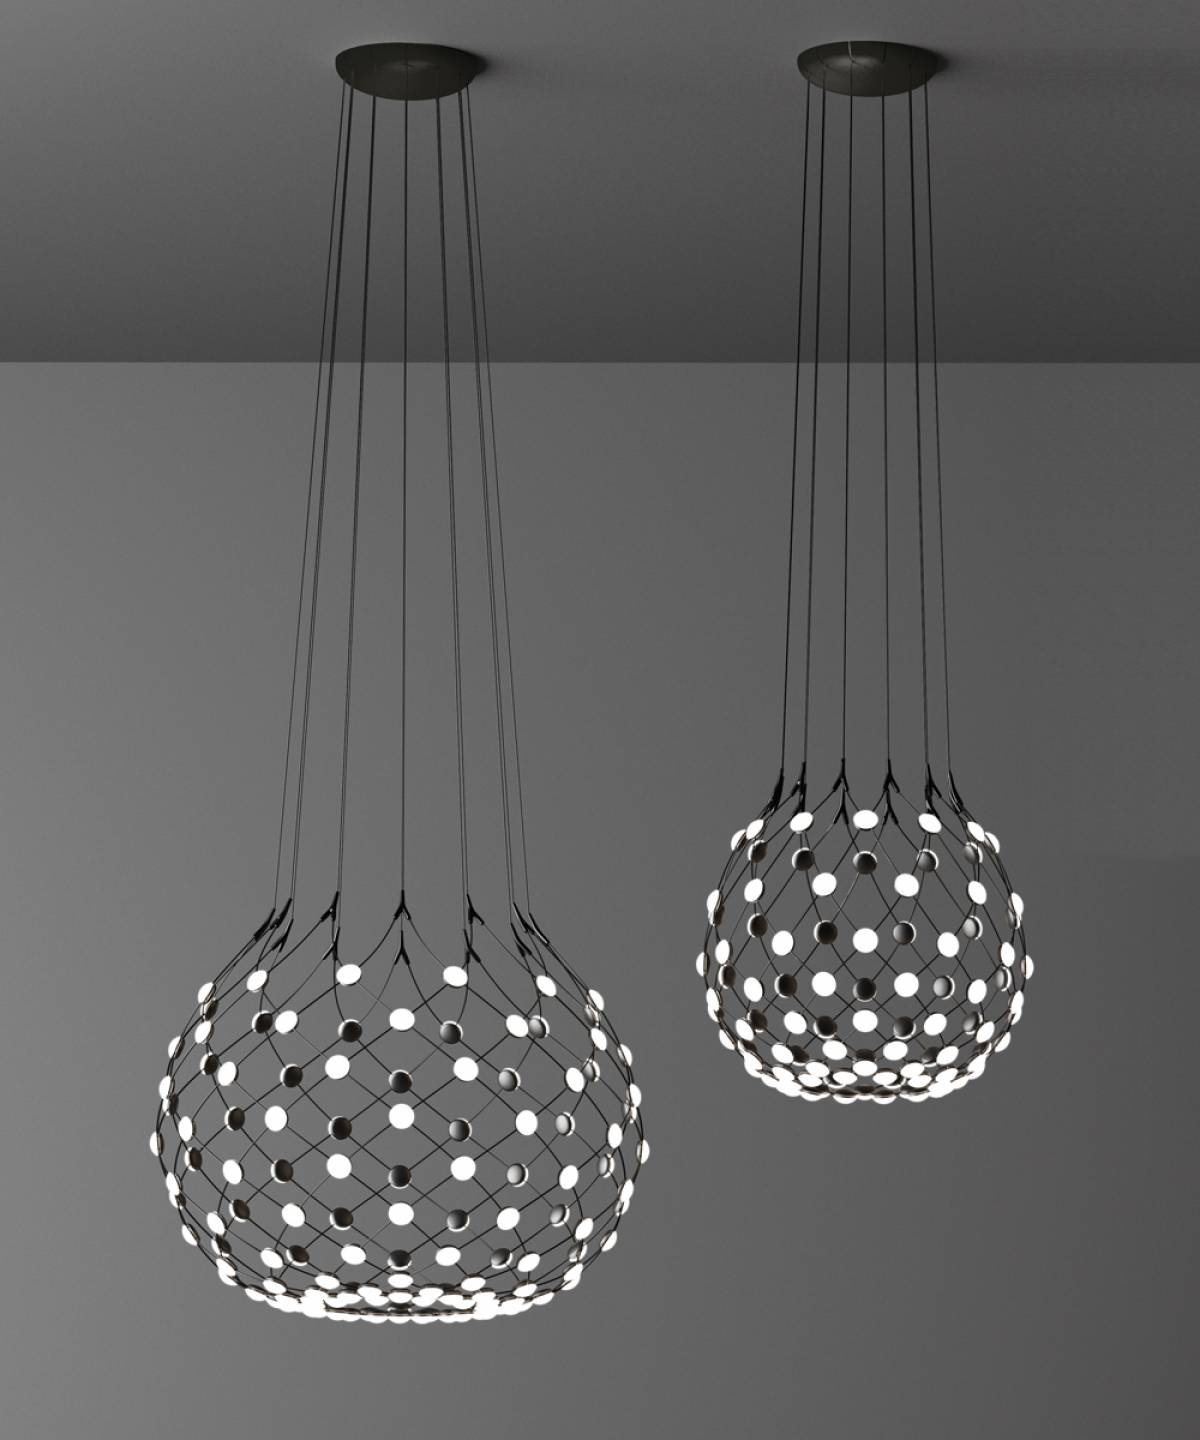 7 Mesh suspension lamp Luceplan